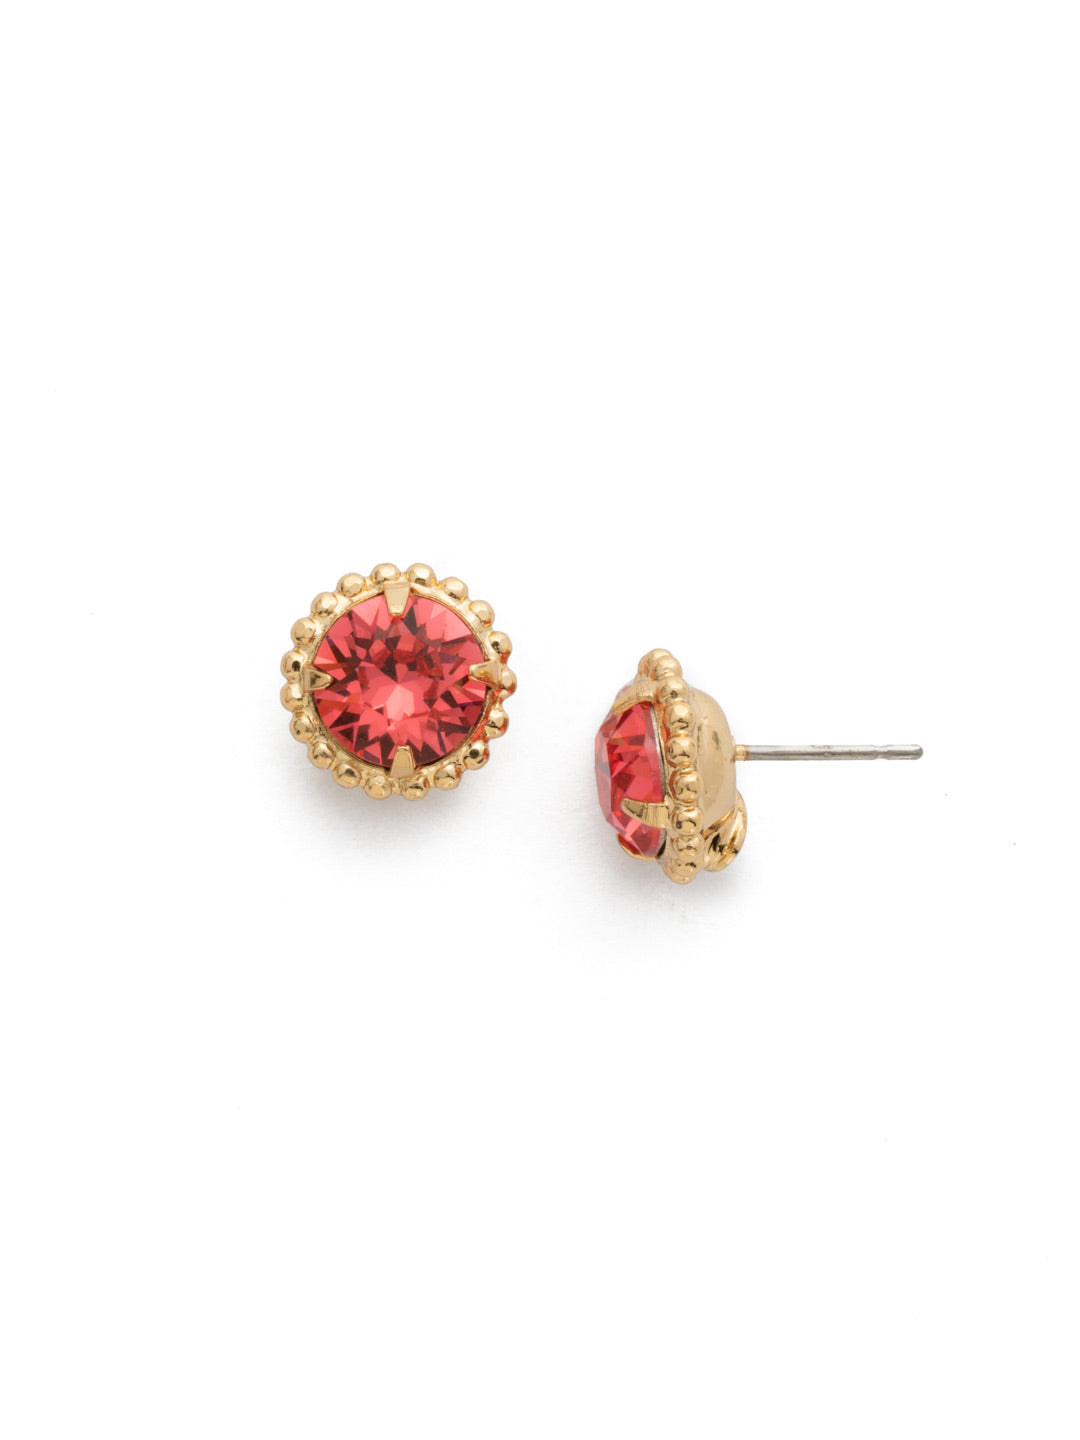 Simplicity Stud Earrings - EBY38BGCRL